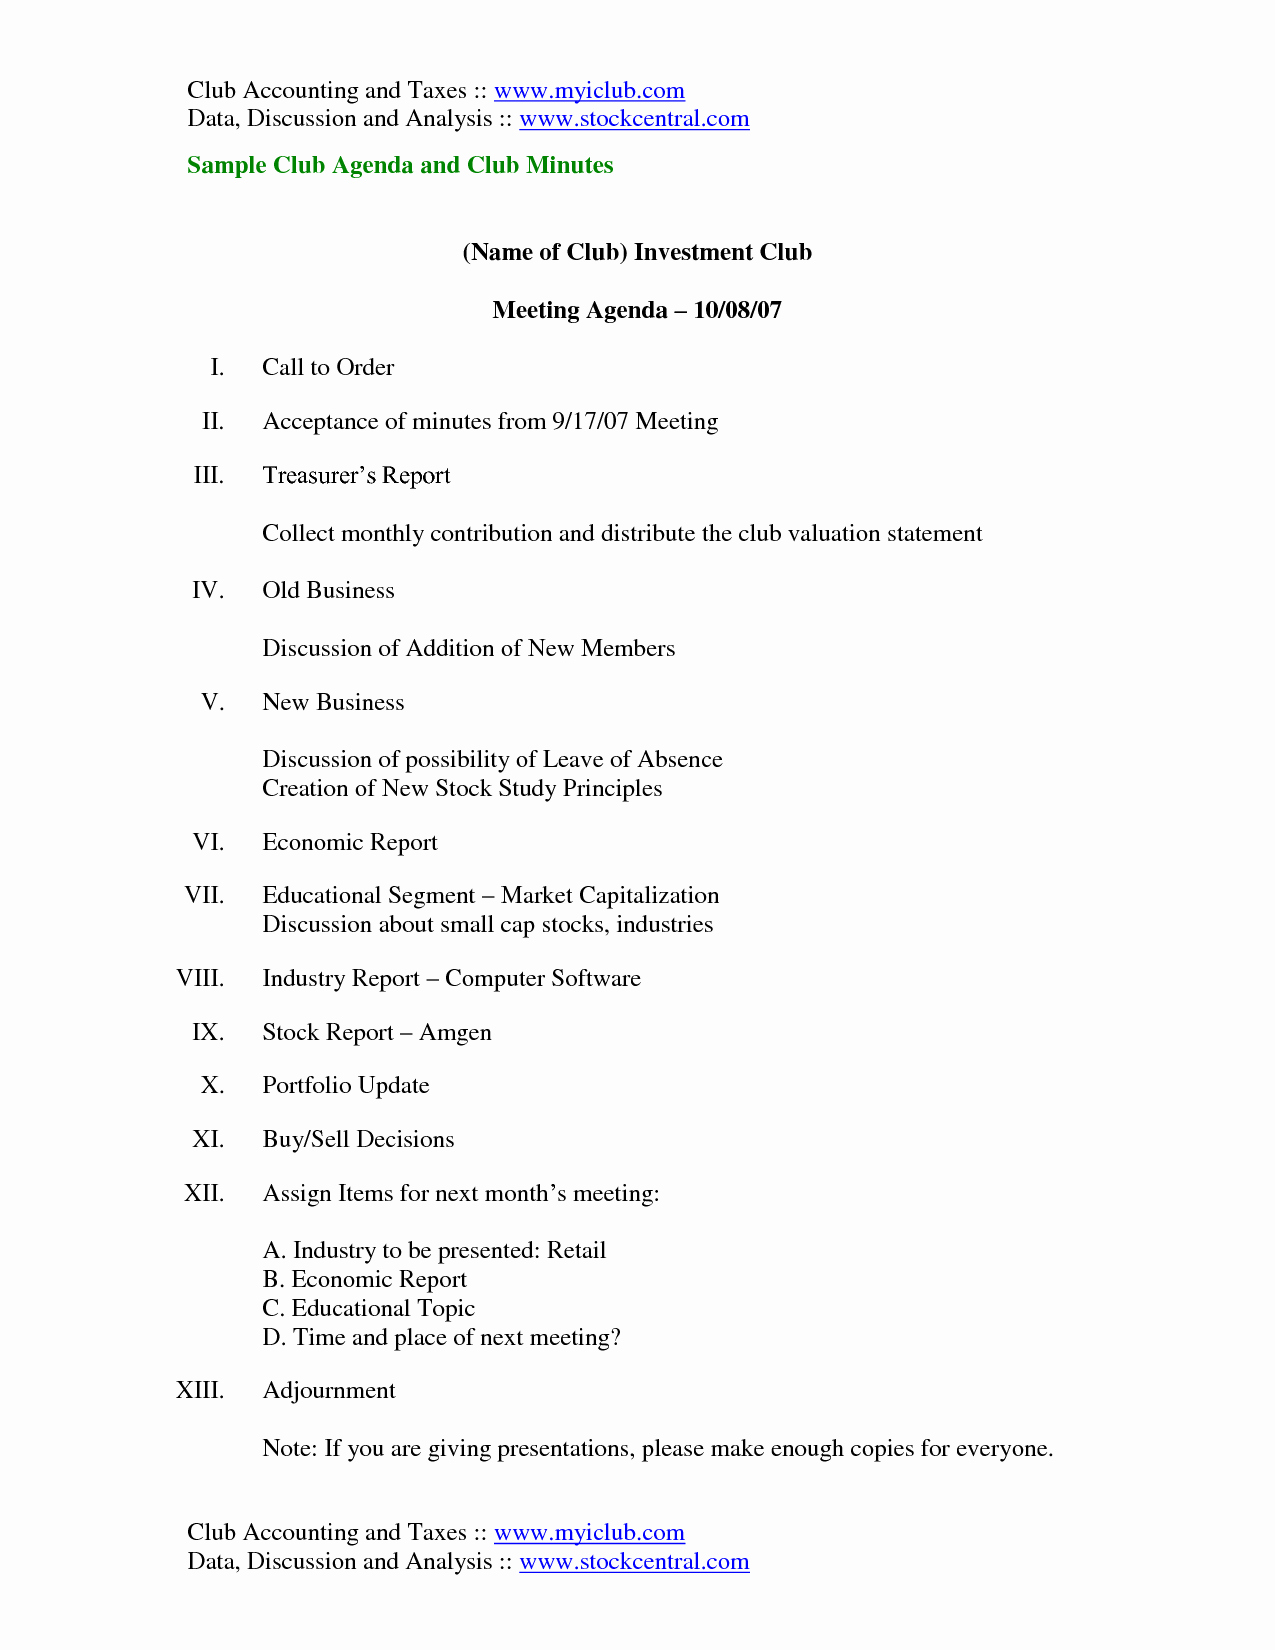 Club Meeting Minutes Template Awesome Best S Of Sample Meeting Agenda and Minutes Meeting Minutes and Agenda Samples Meeting